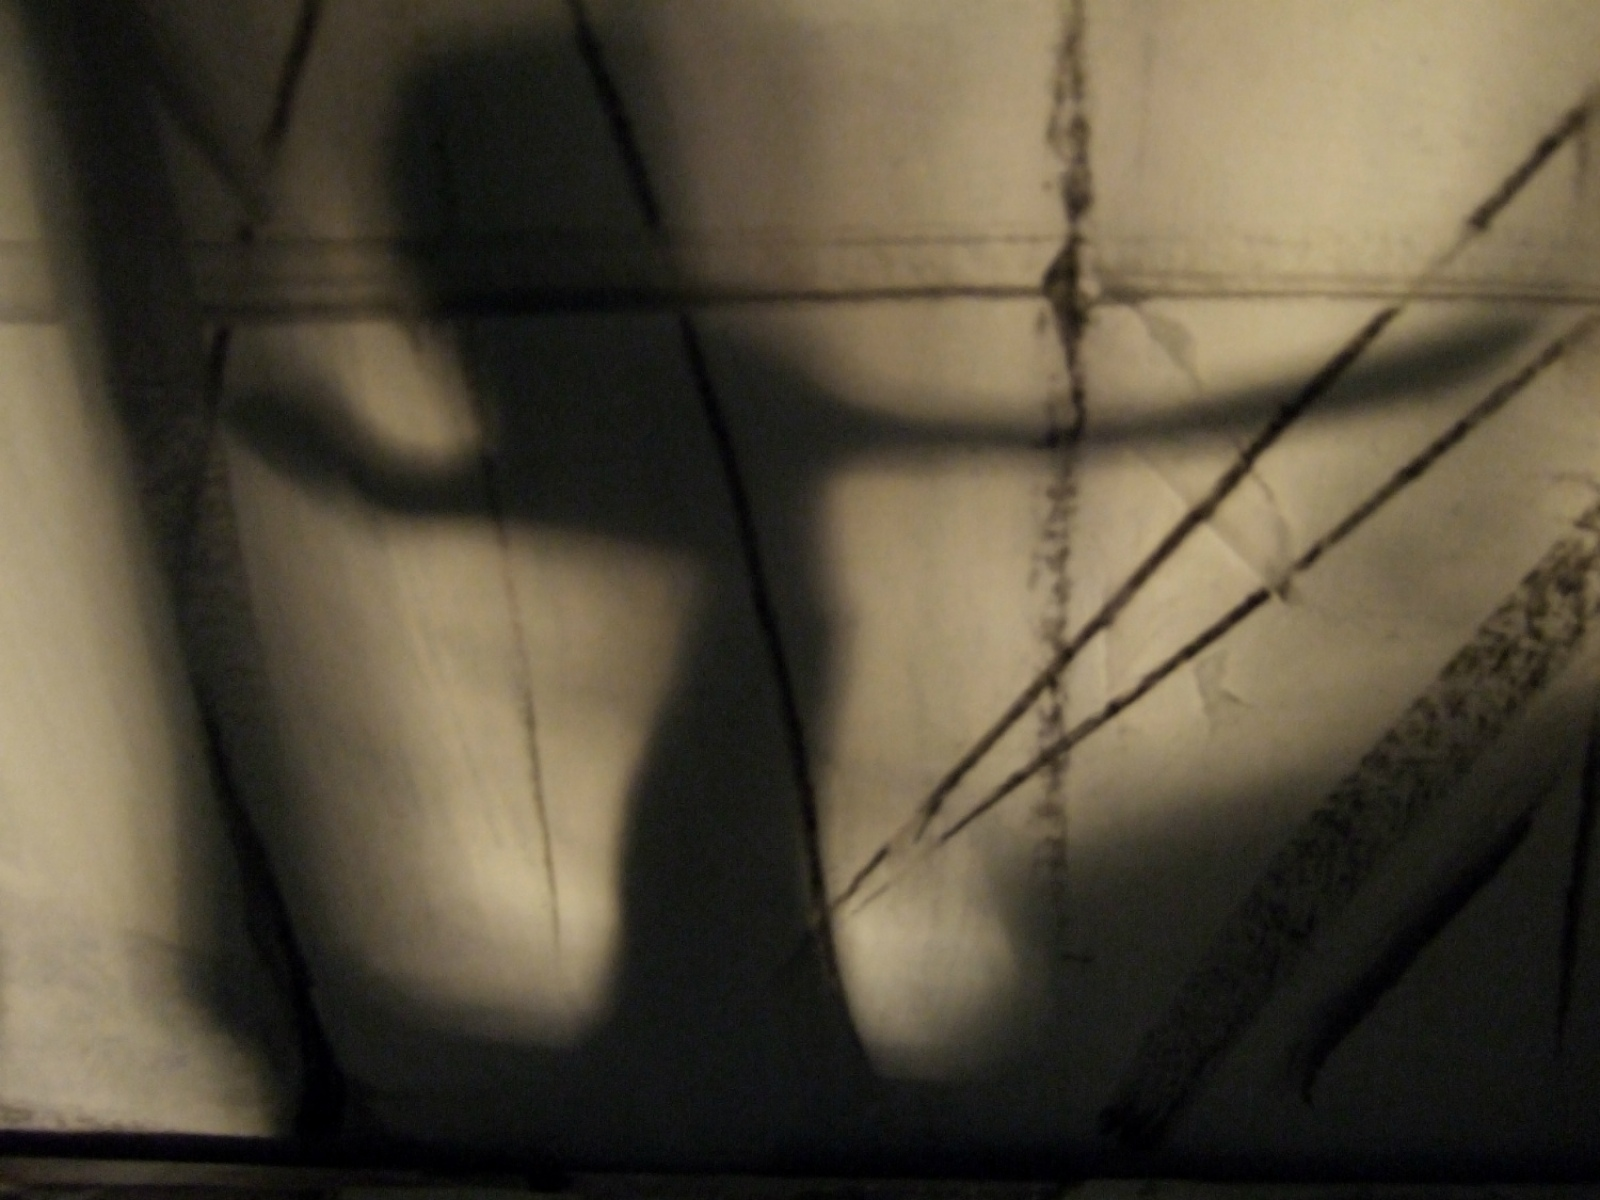 Katherine Tulloh - K80, Untitled, 2008 · © Copyright 2019